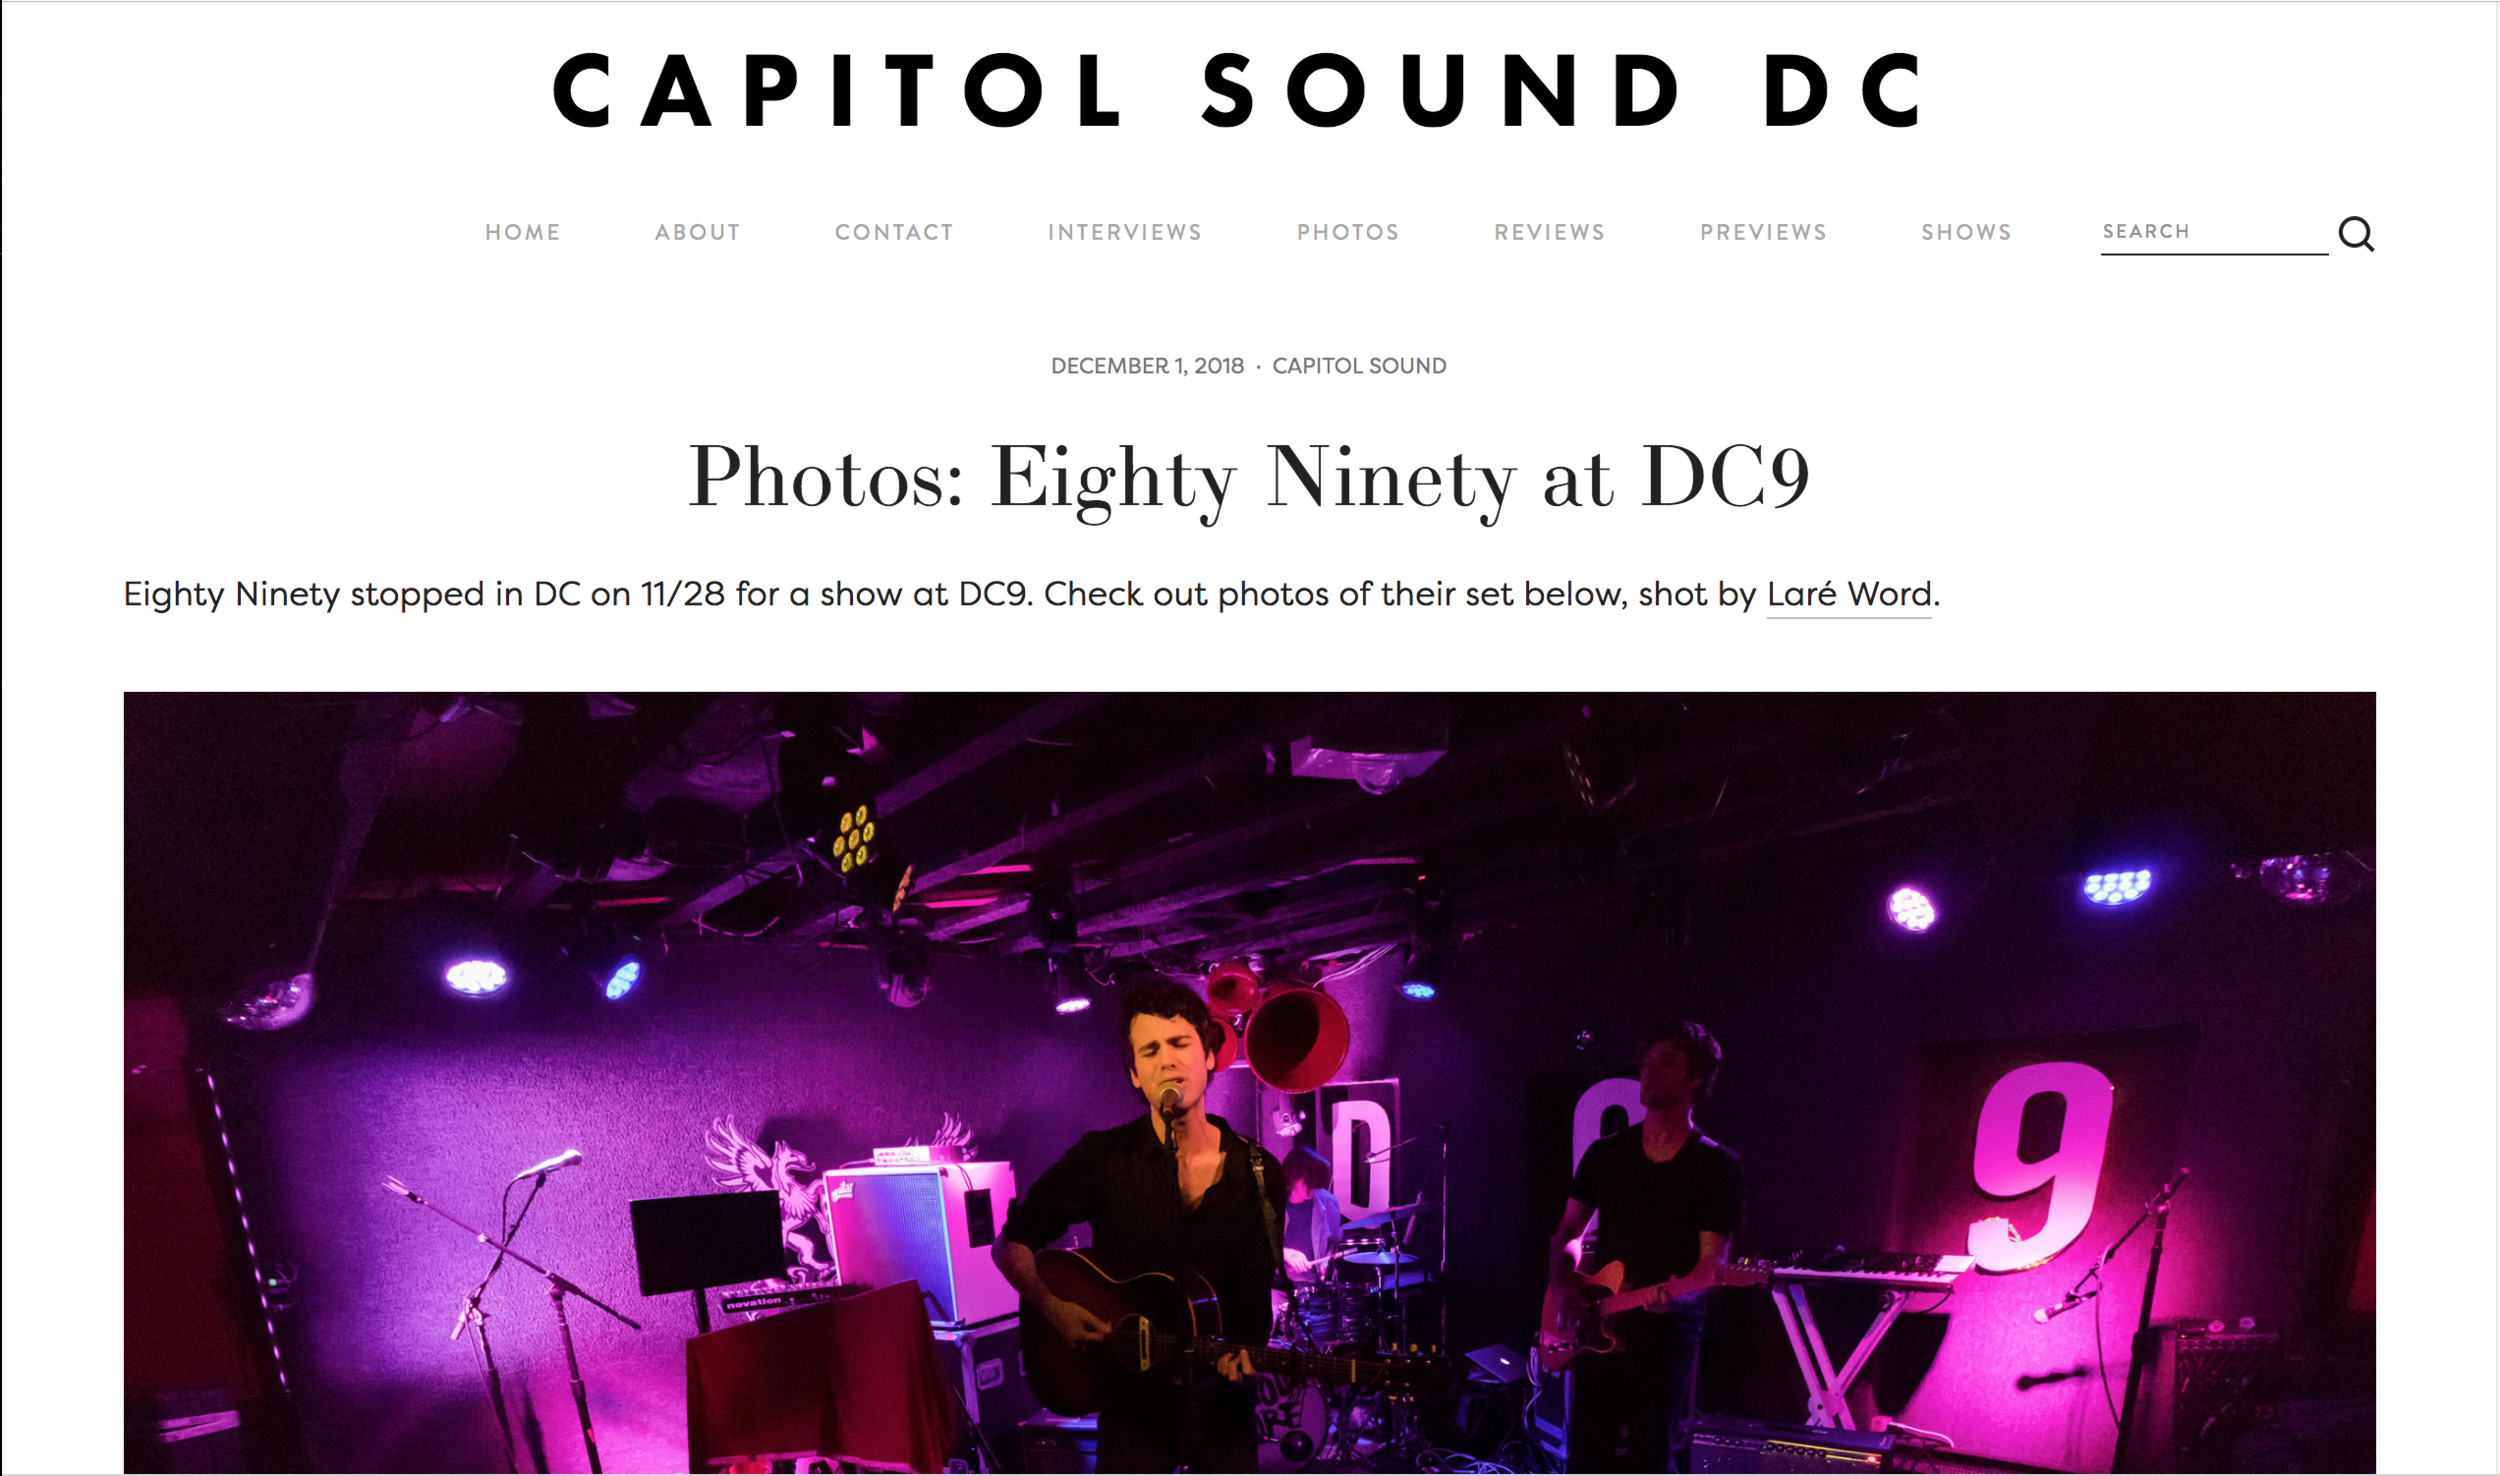 https://capitolsounddc.com/capitol-sound/2018/12/1/photos-eighty-ninety-at-dc9